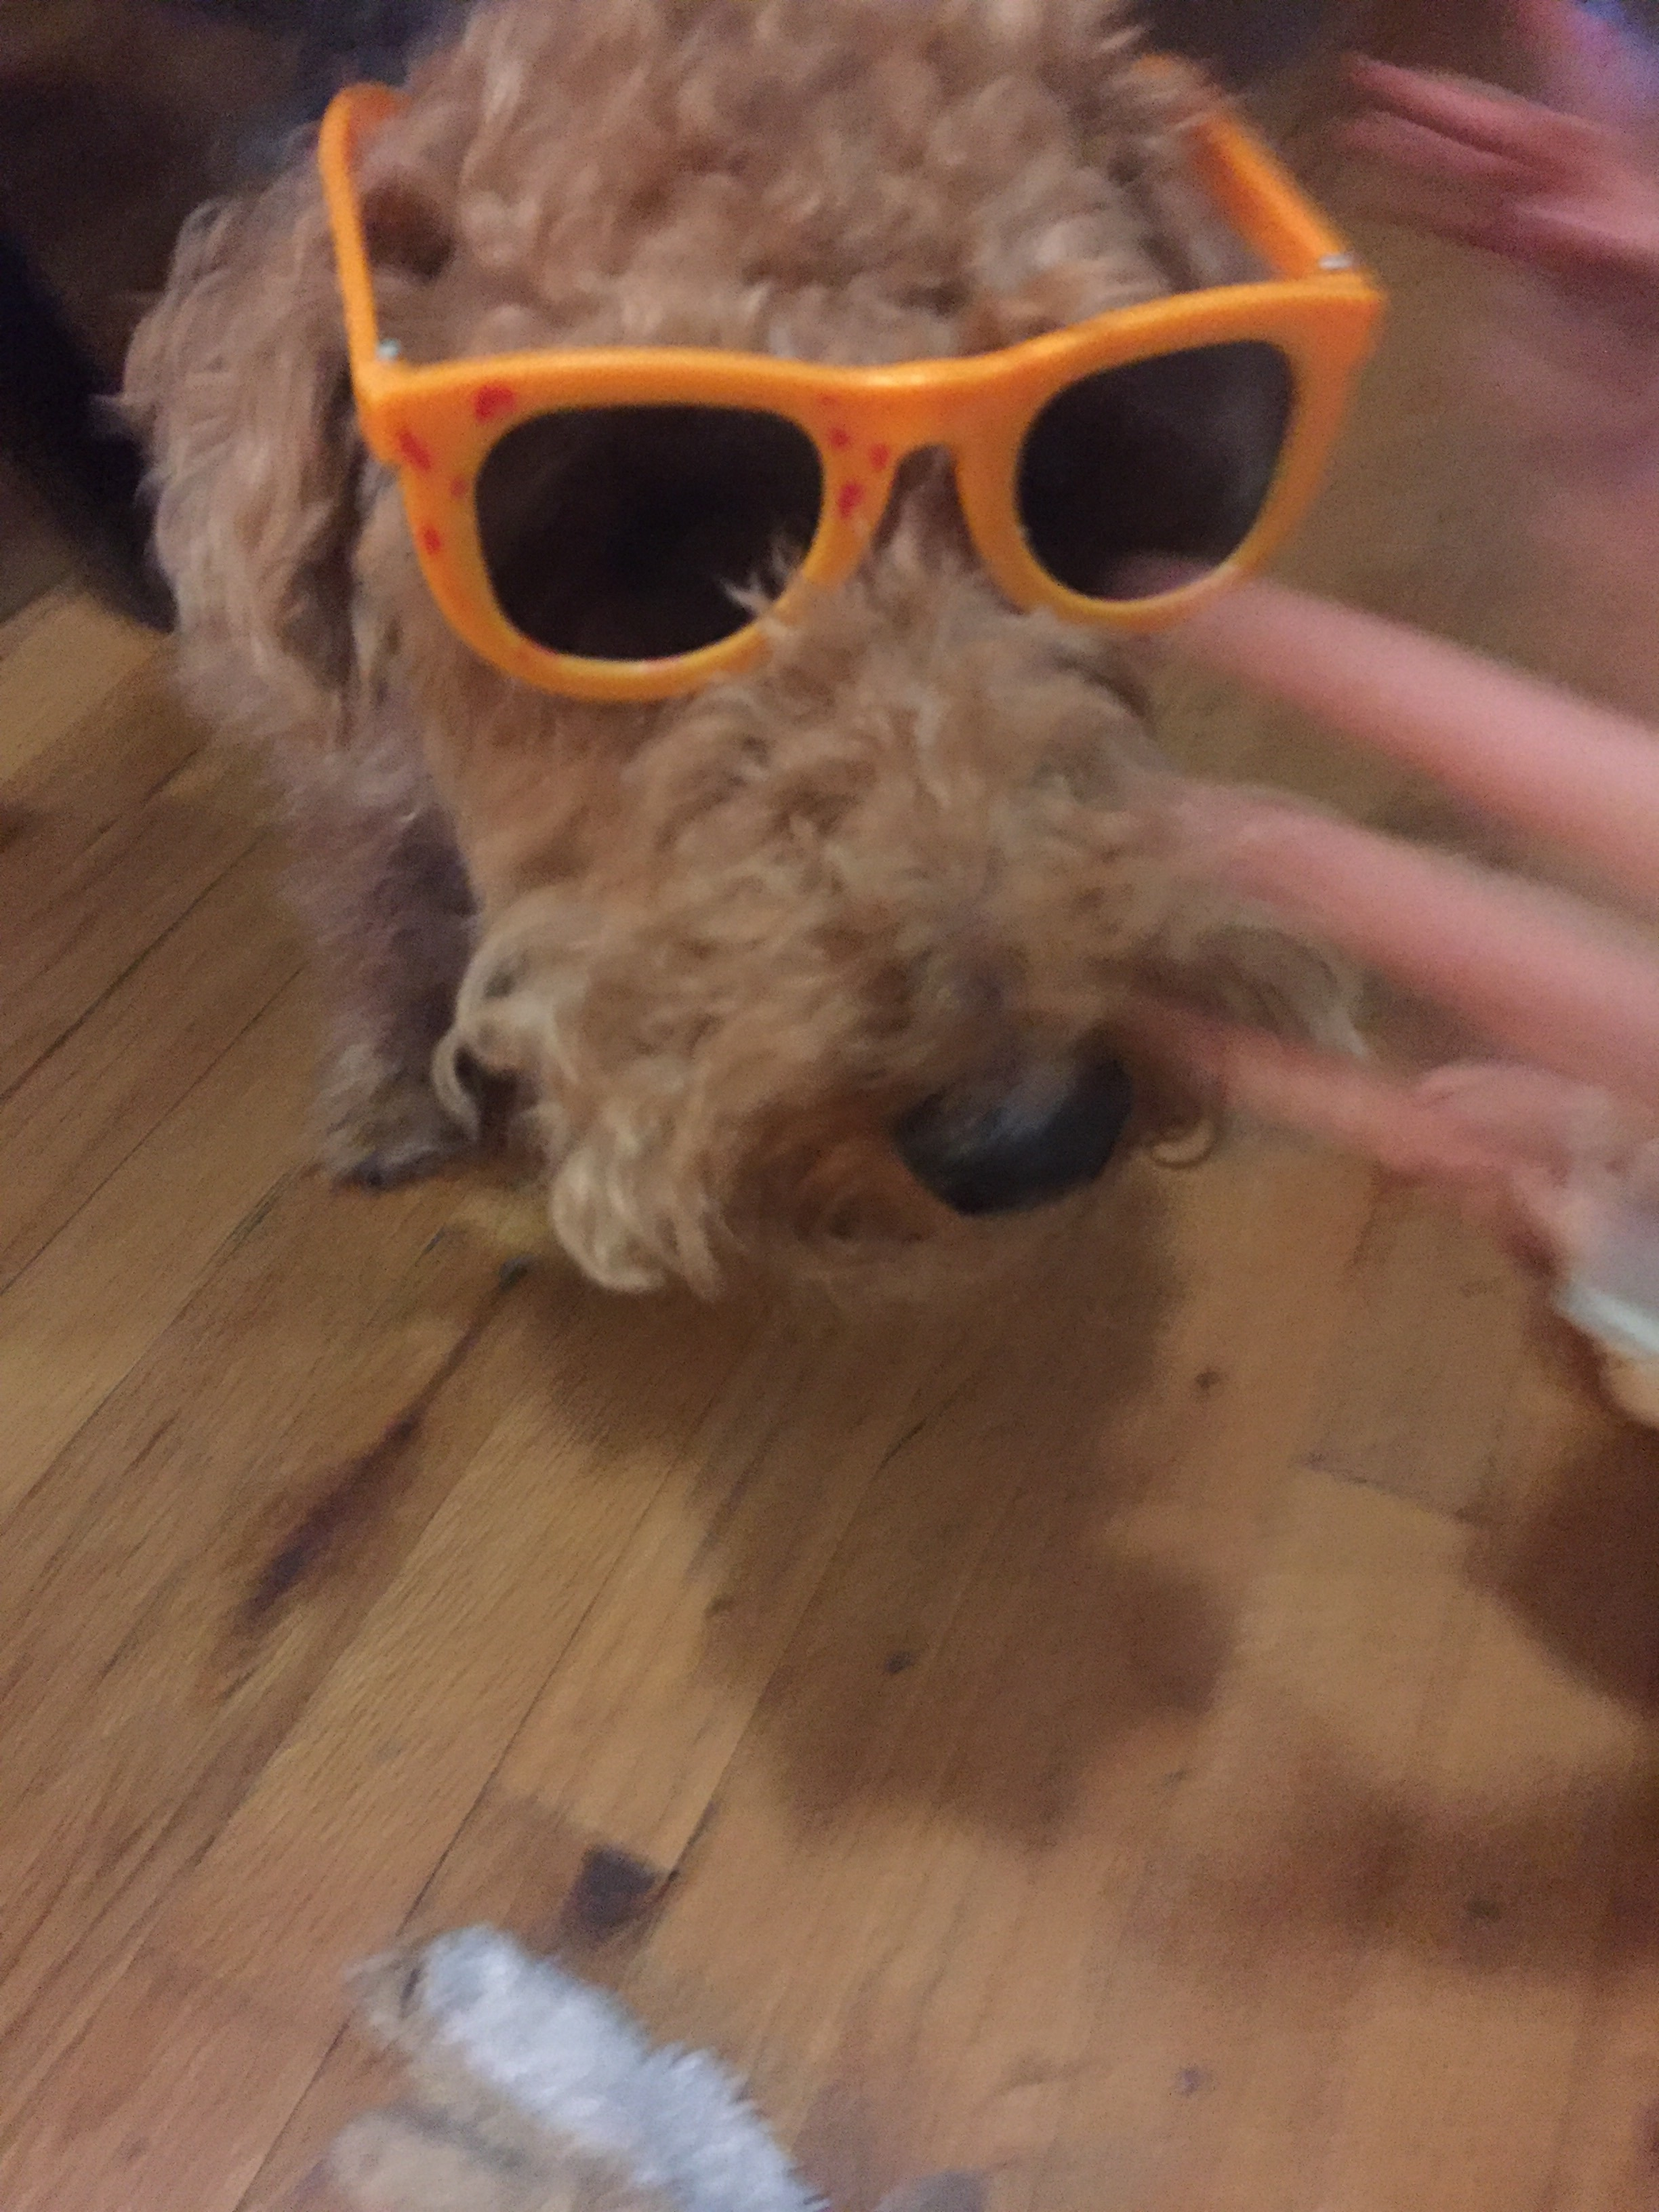 Lucie and Bessy playing with some wild shades.